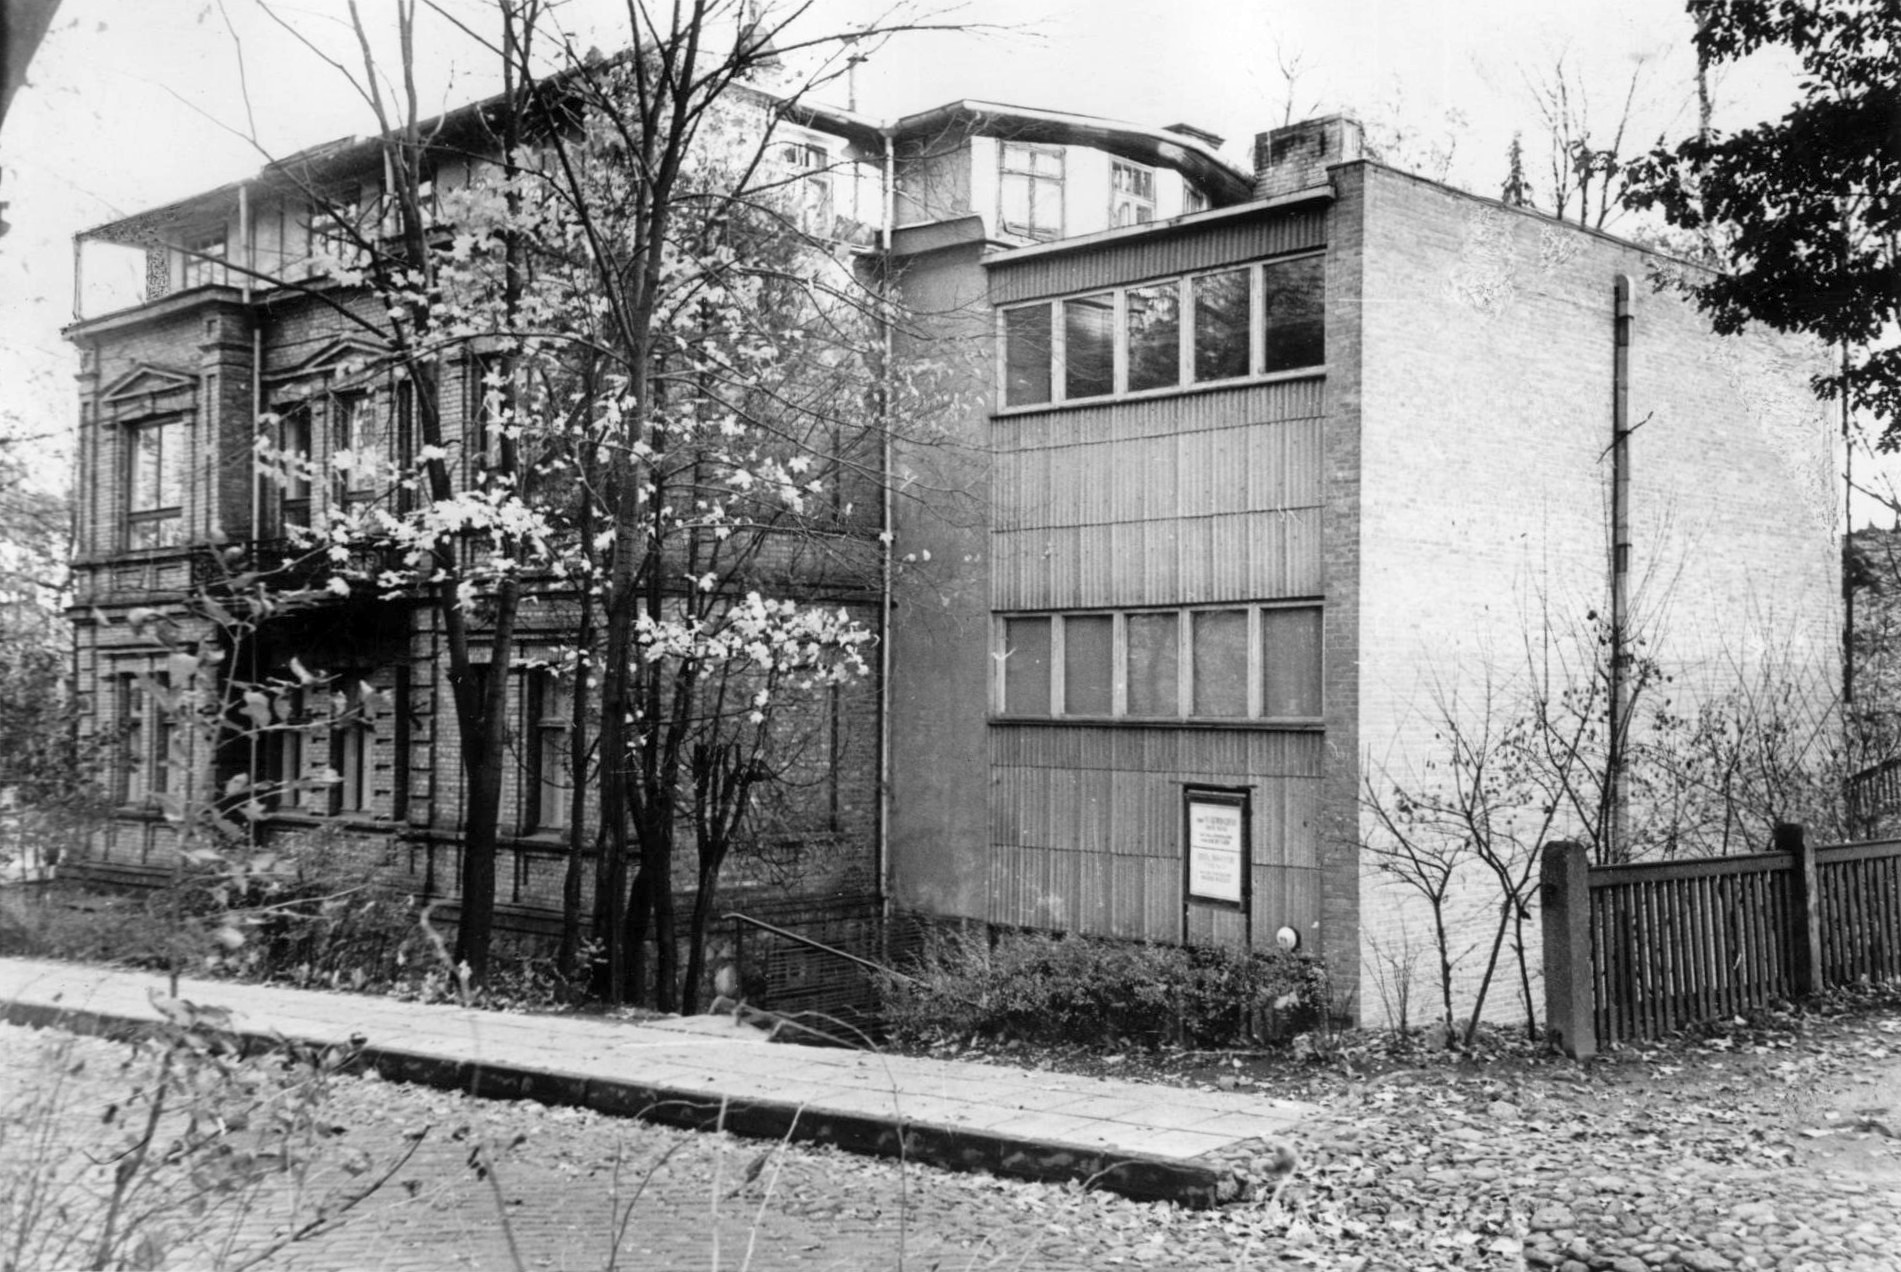 Vallikraavi 14 addition in 1966.